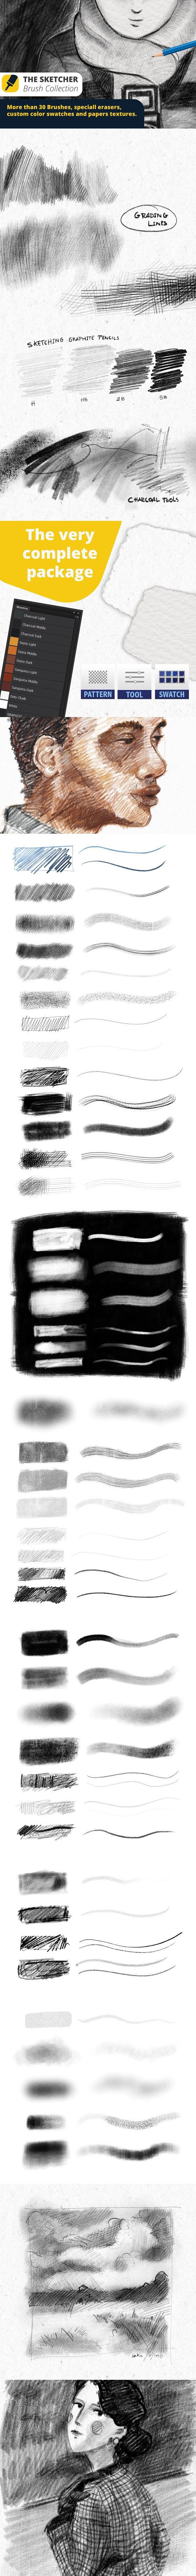 The Sketcher Collection Brushes. Photoshop Brushes. $9.00